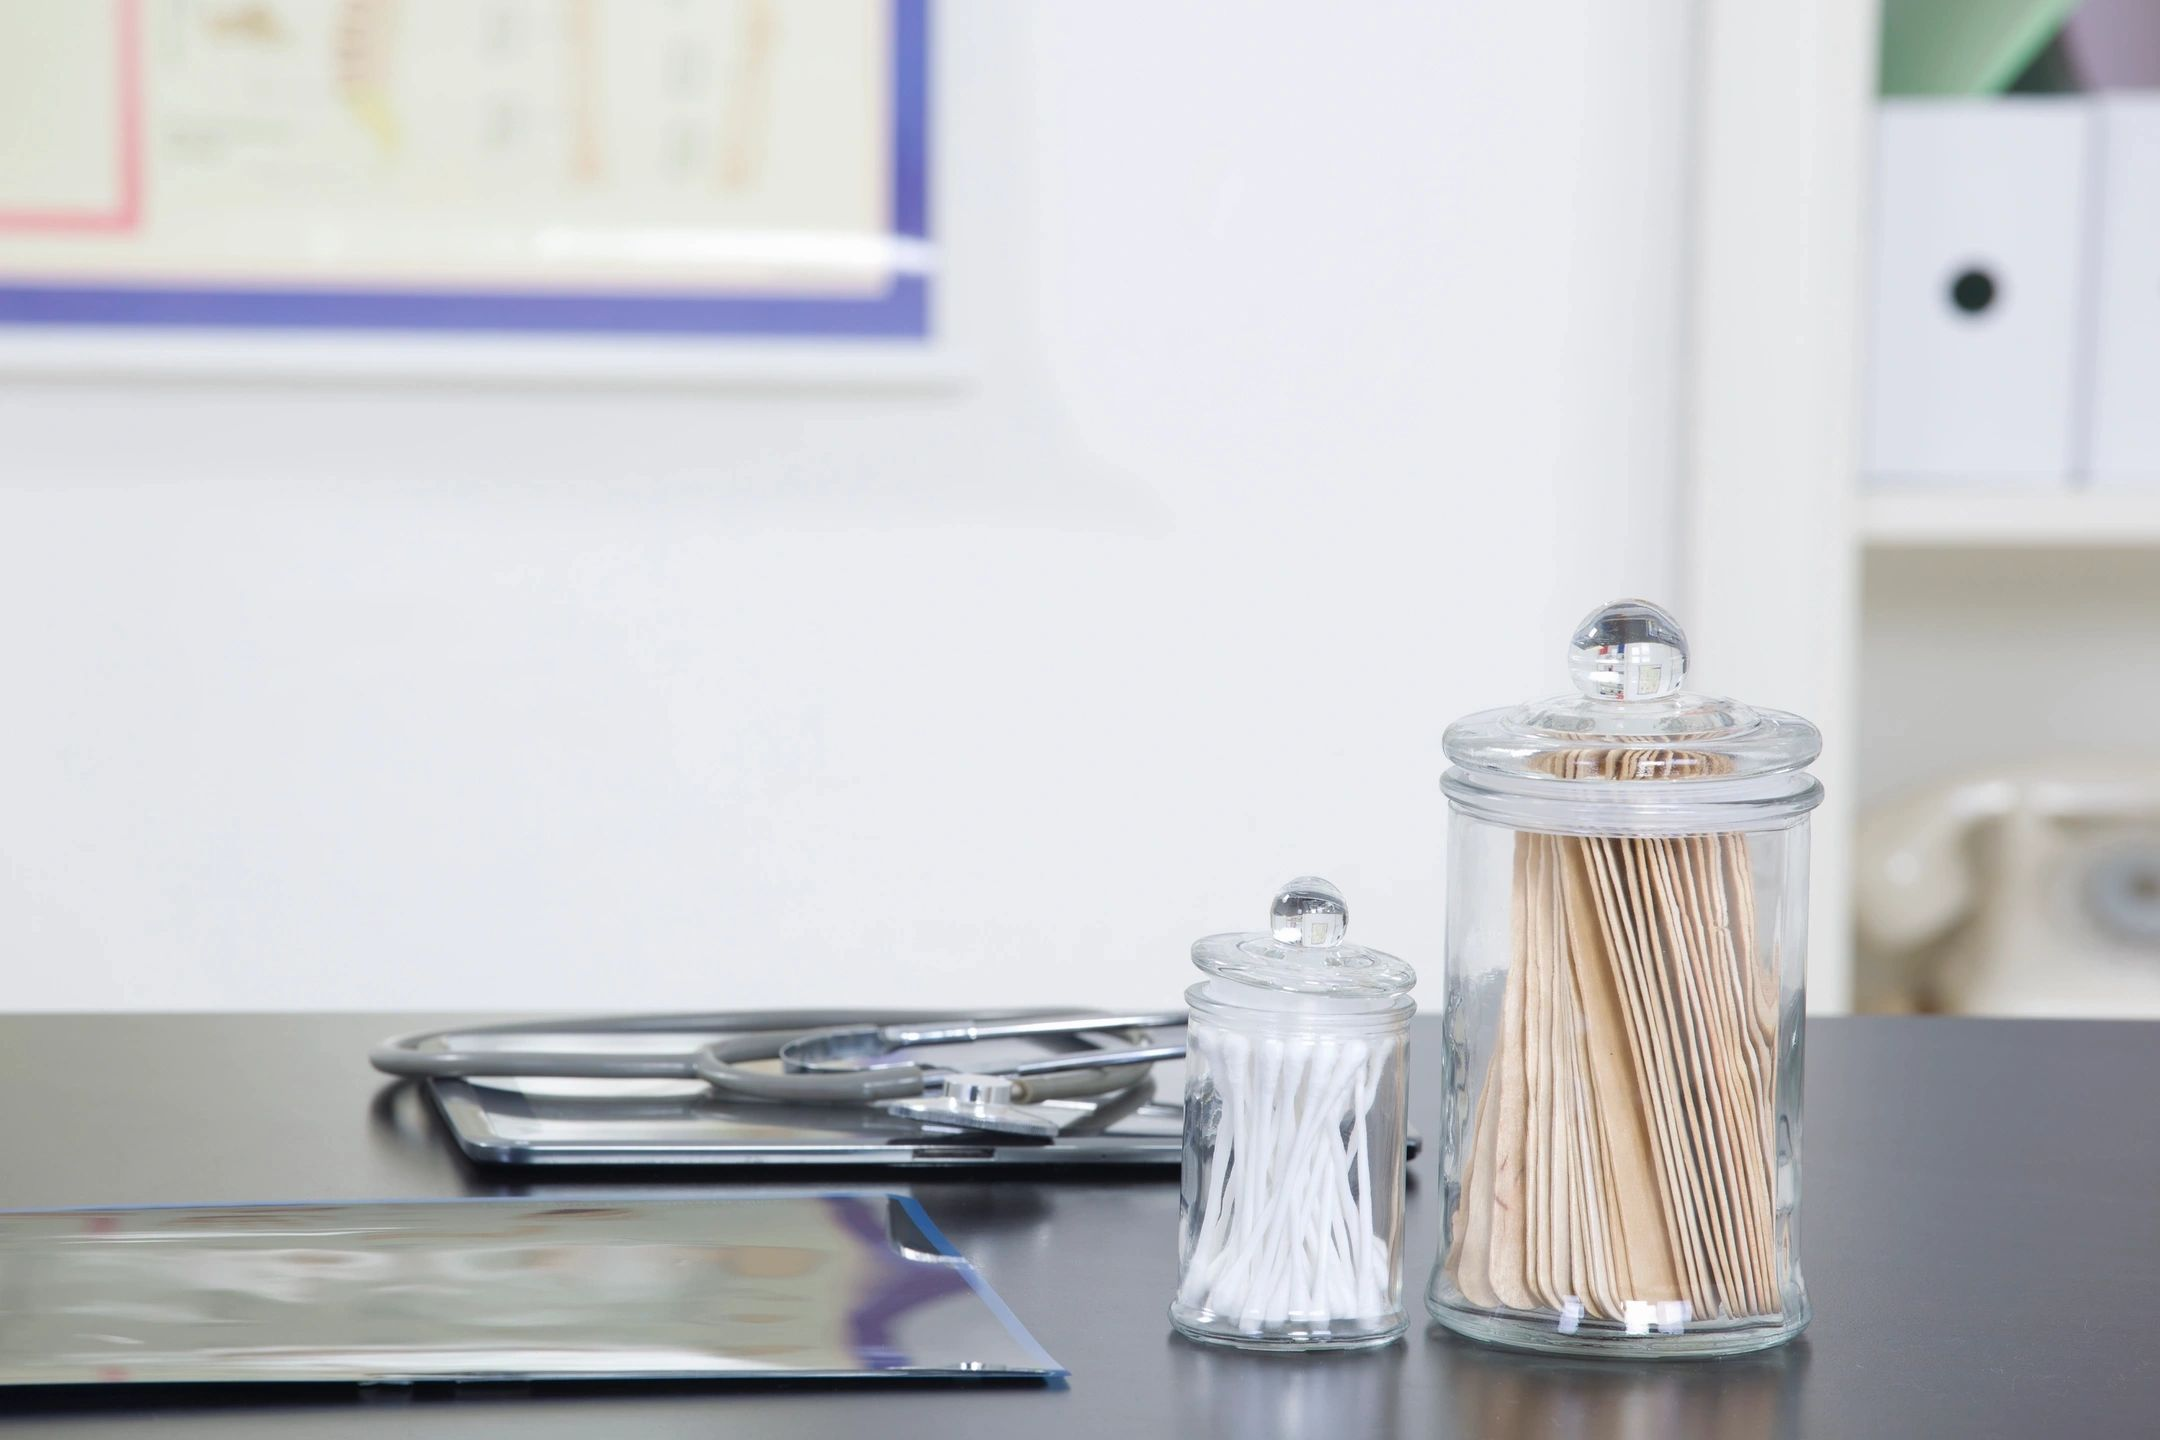 stethoscope, cotton swabs and tongue depressors sitting on a desk